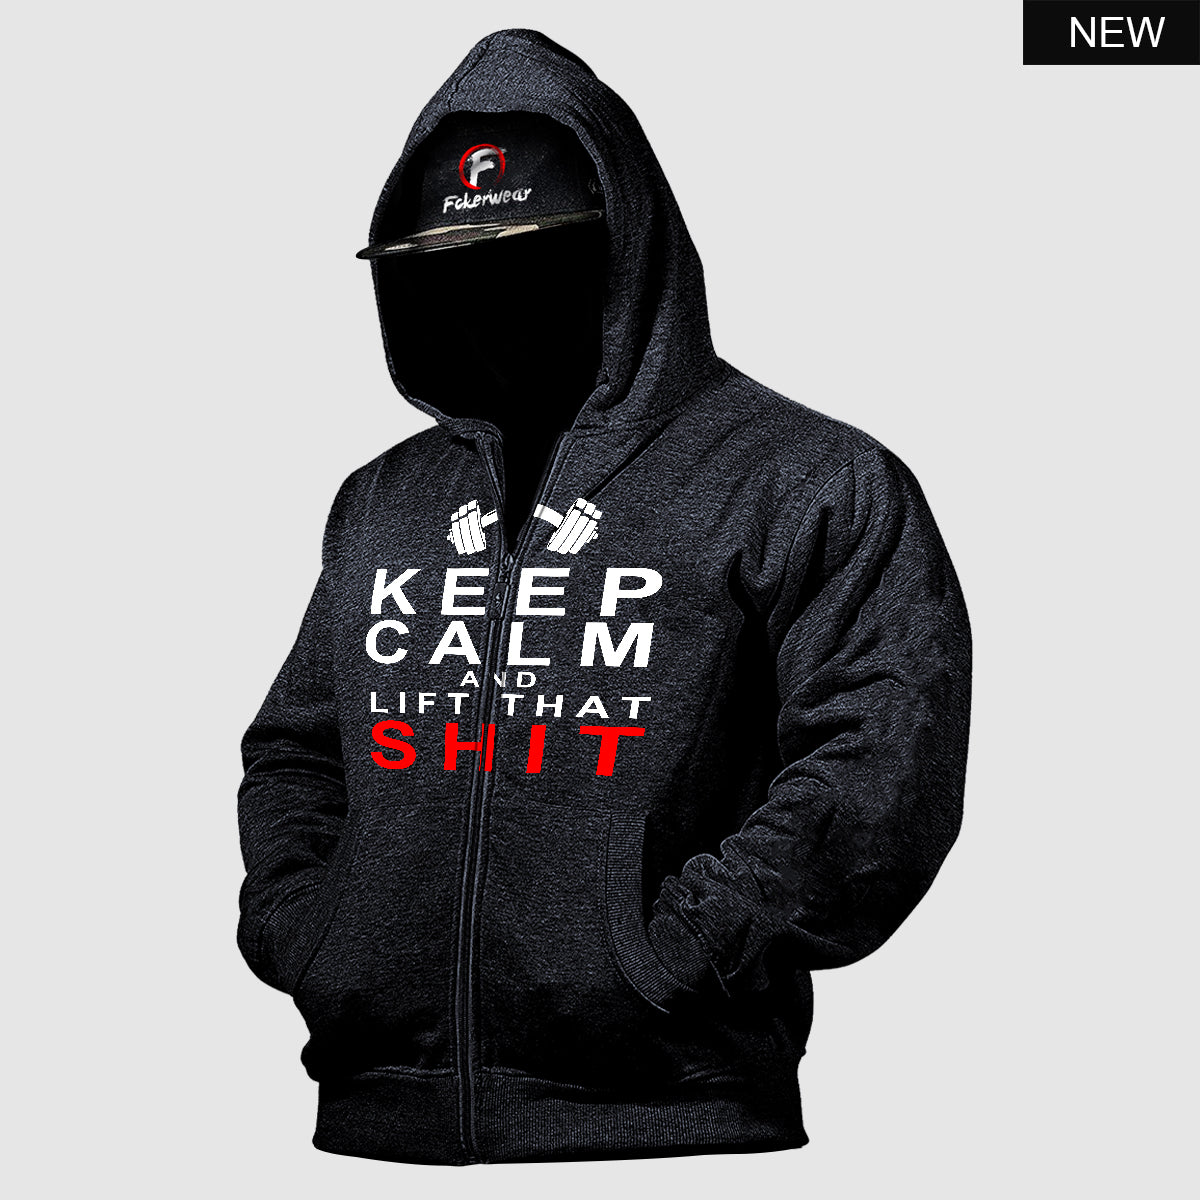 Keep Calm and Lift that Shit™ zip hoodie